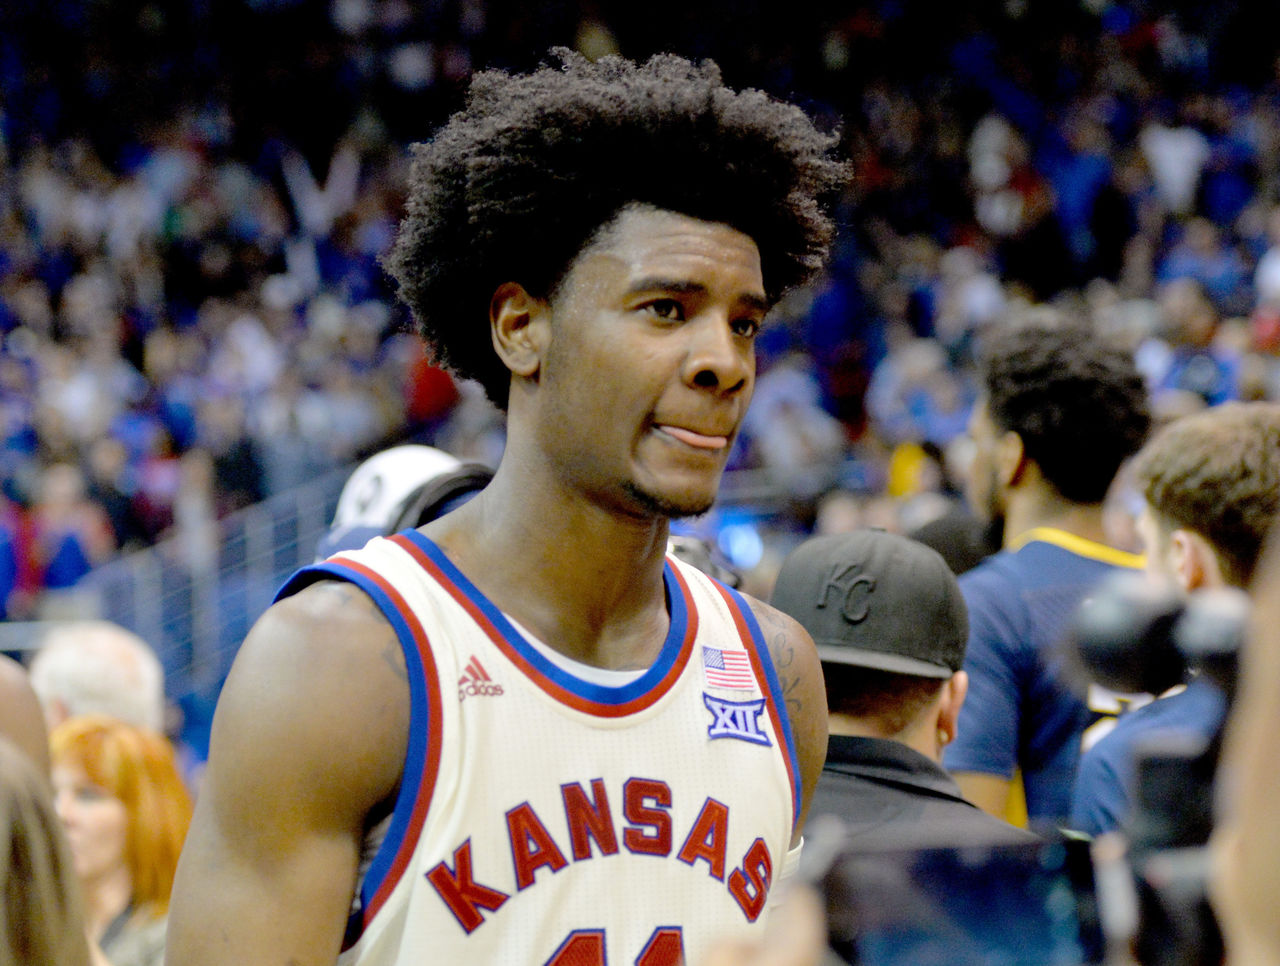 Cropped_2017-02-14t050756z_785048804_nocid_rtrmadp_3_ncaa-basketball-west-virginia-at-kansas